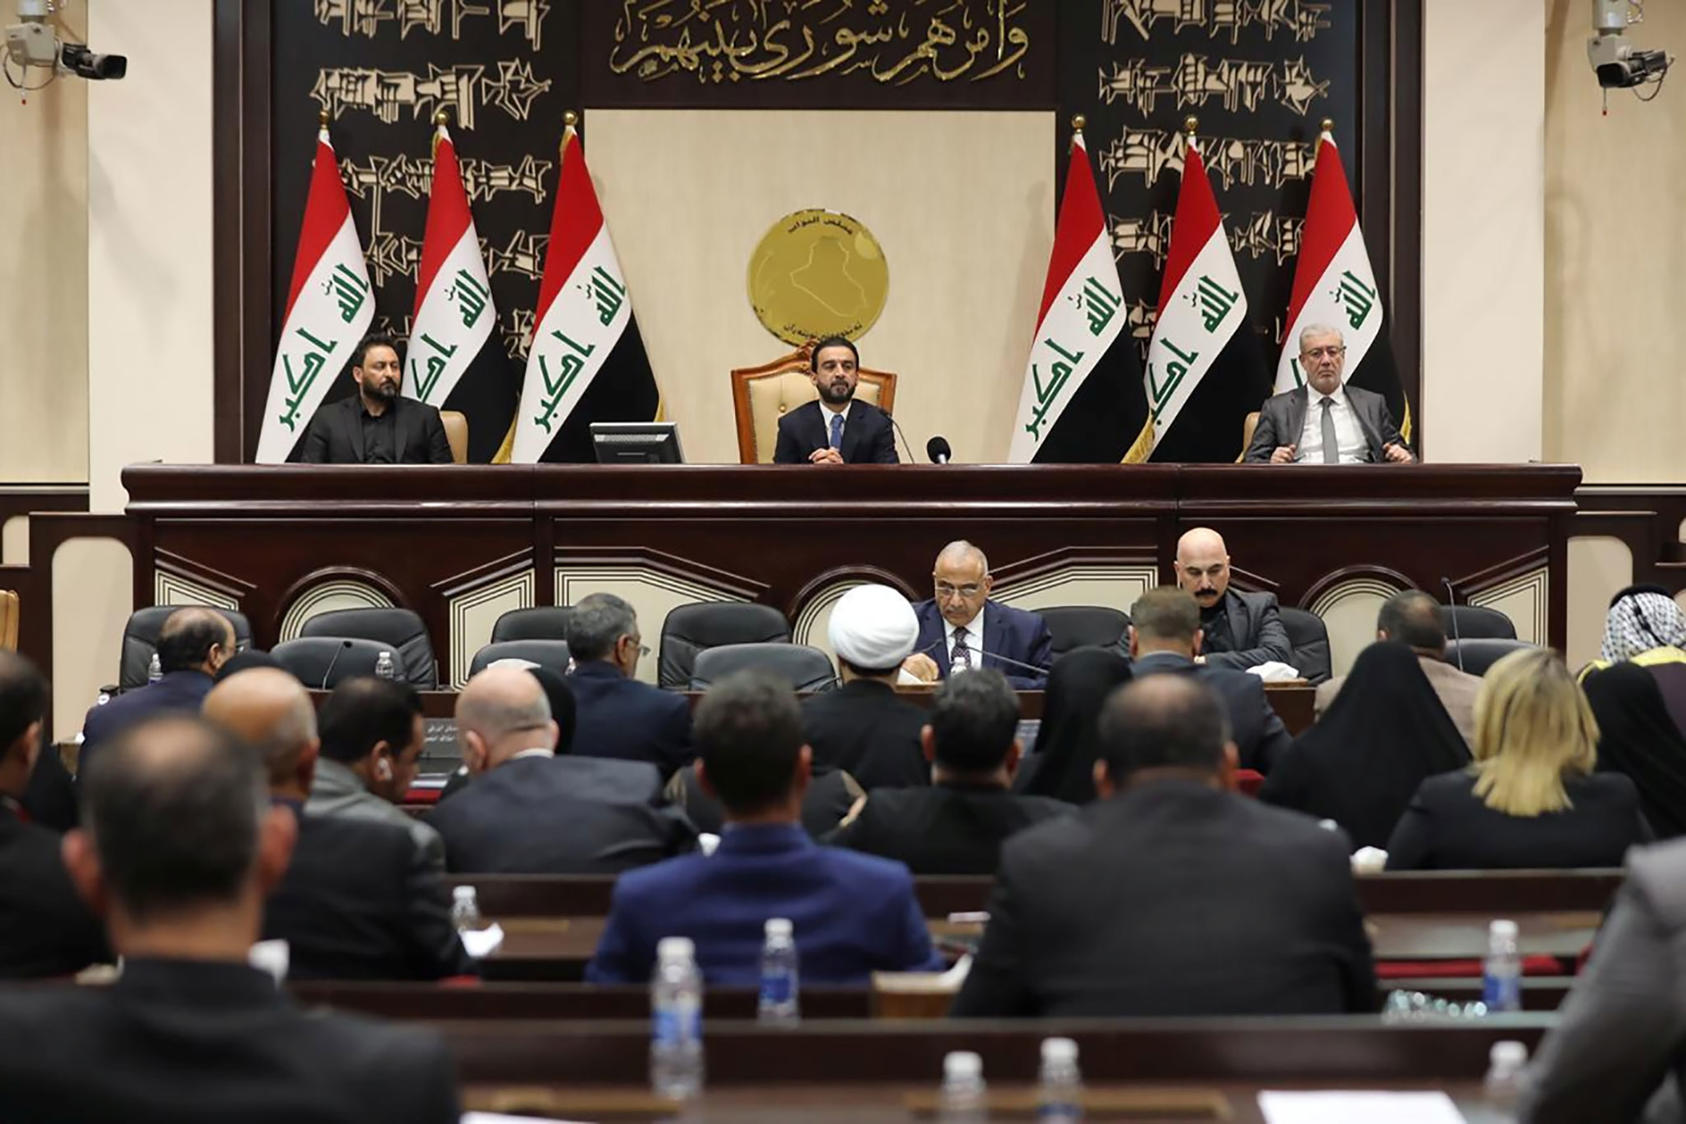 A meeting of the parliament of Iraq in Baghdad, Jan. 5, 2020. (Iraqi Prime Minister's Press Office via The New York Times)